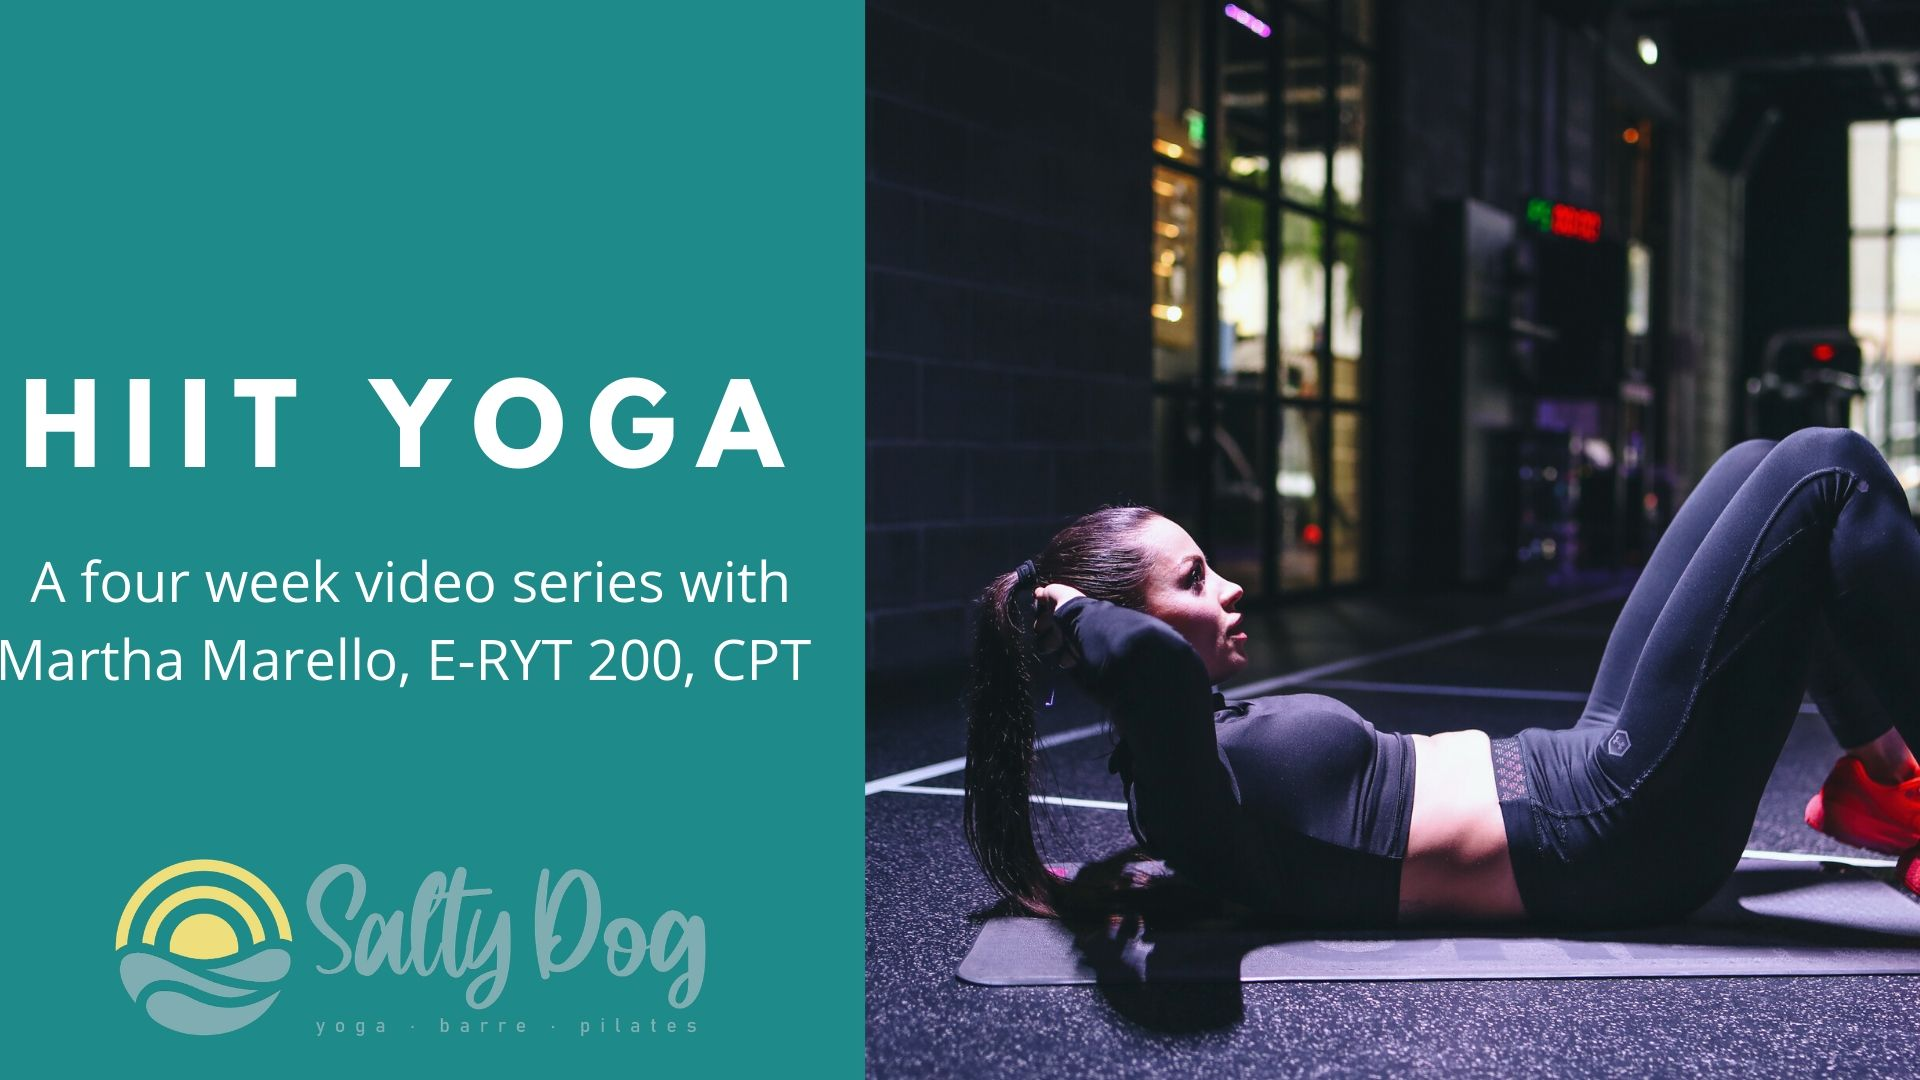 4 HIIT YOGA VIDEO CLASSES